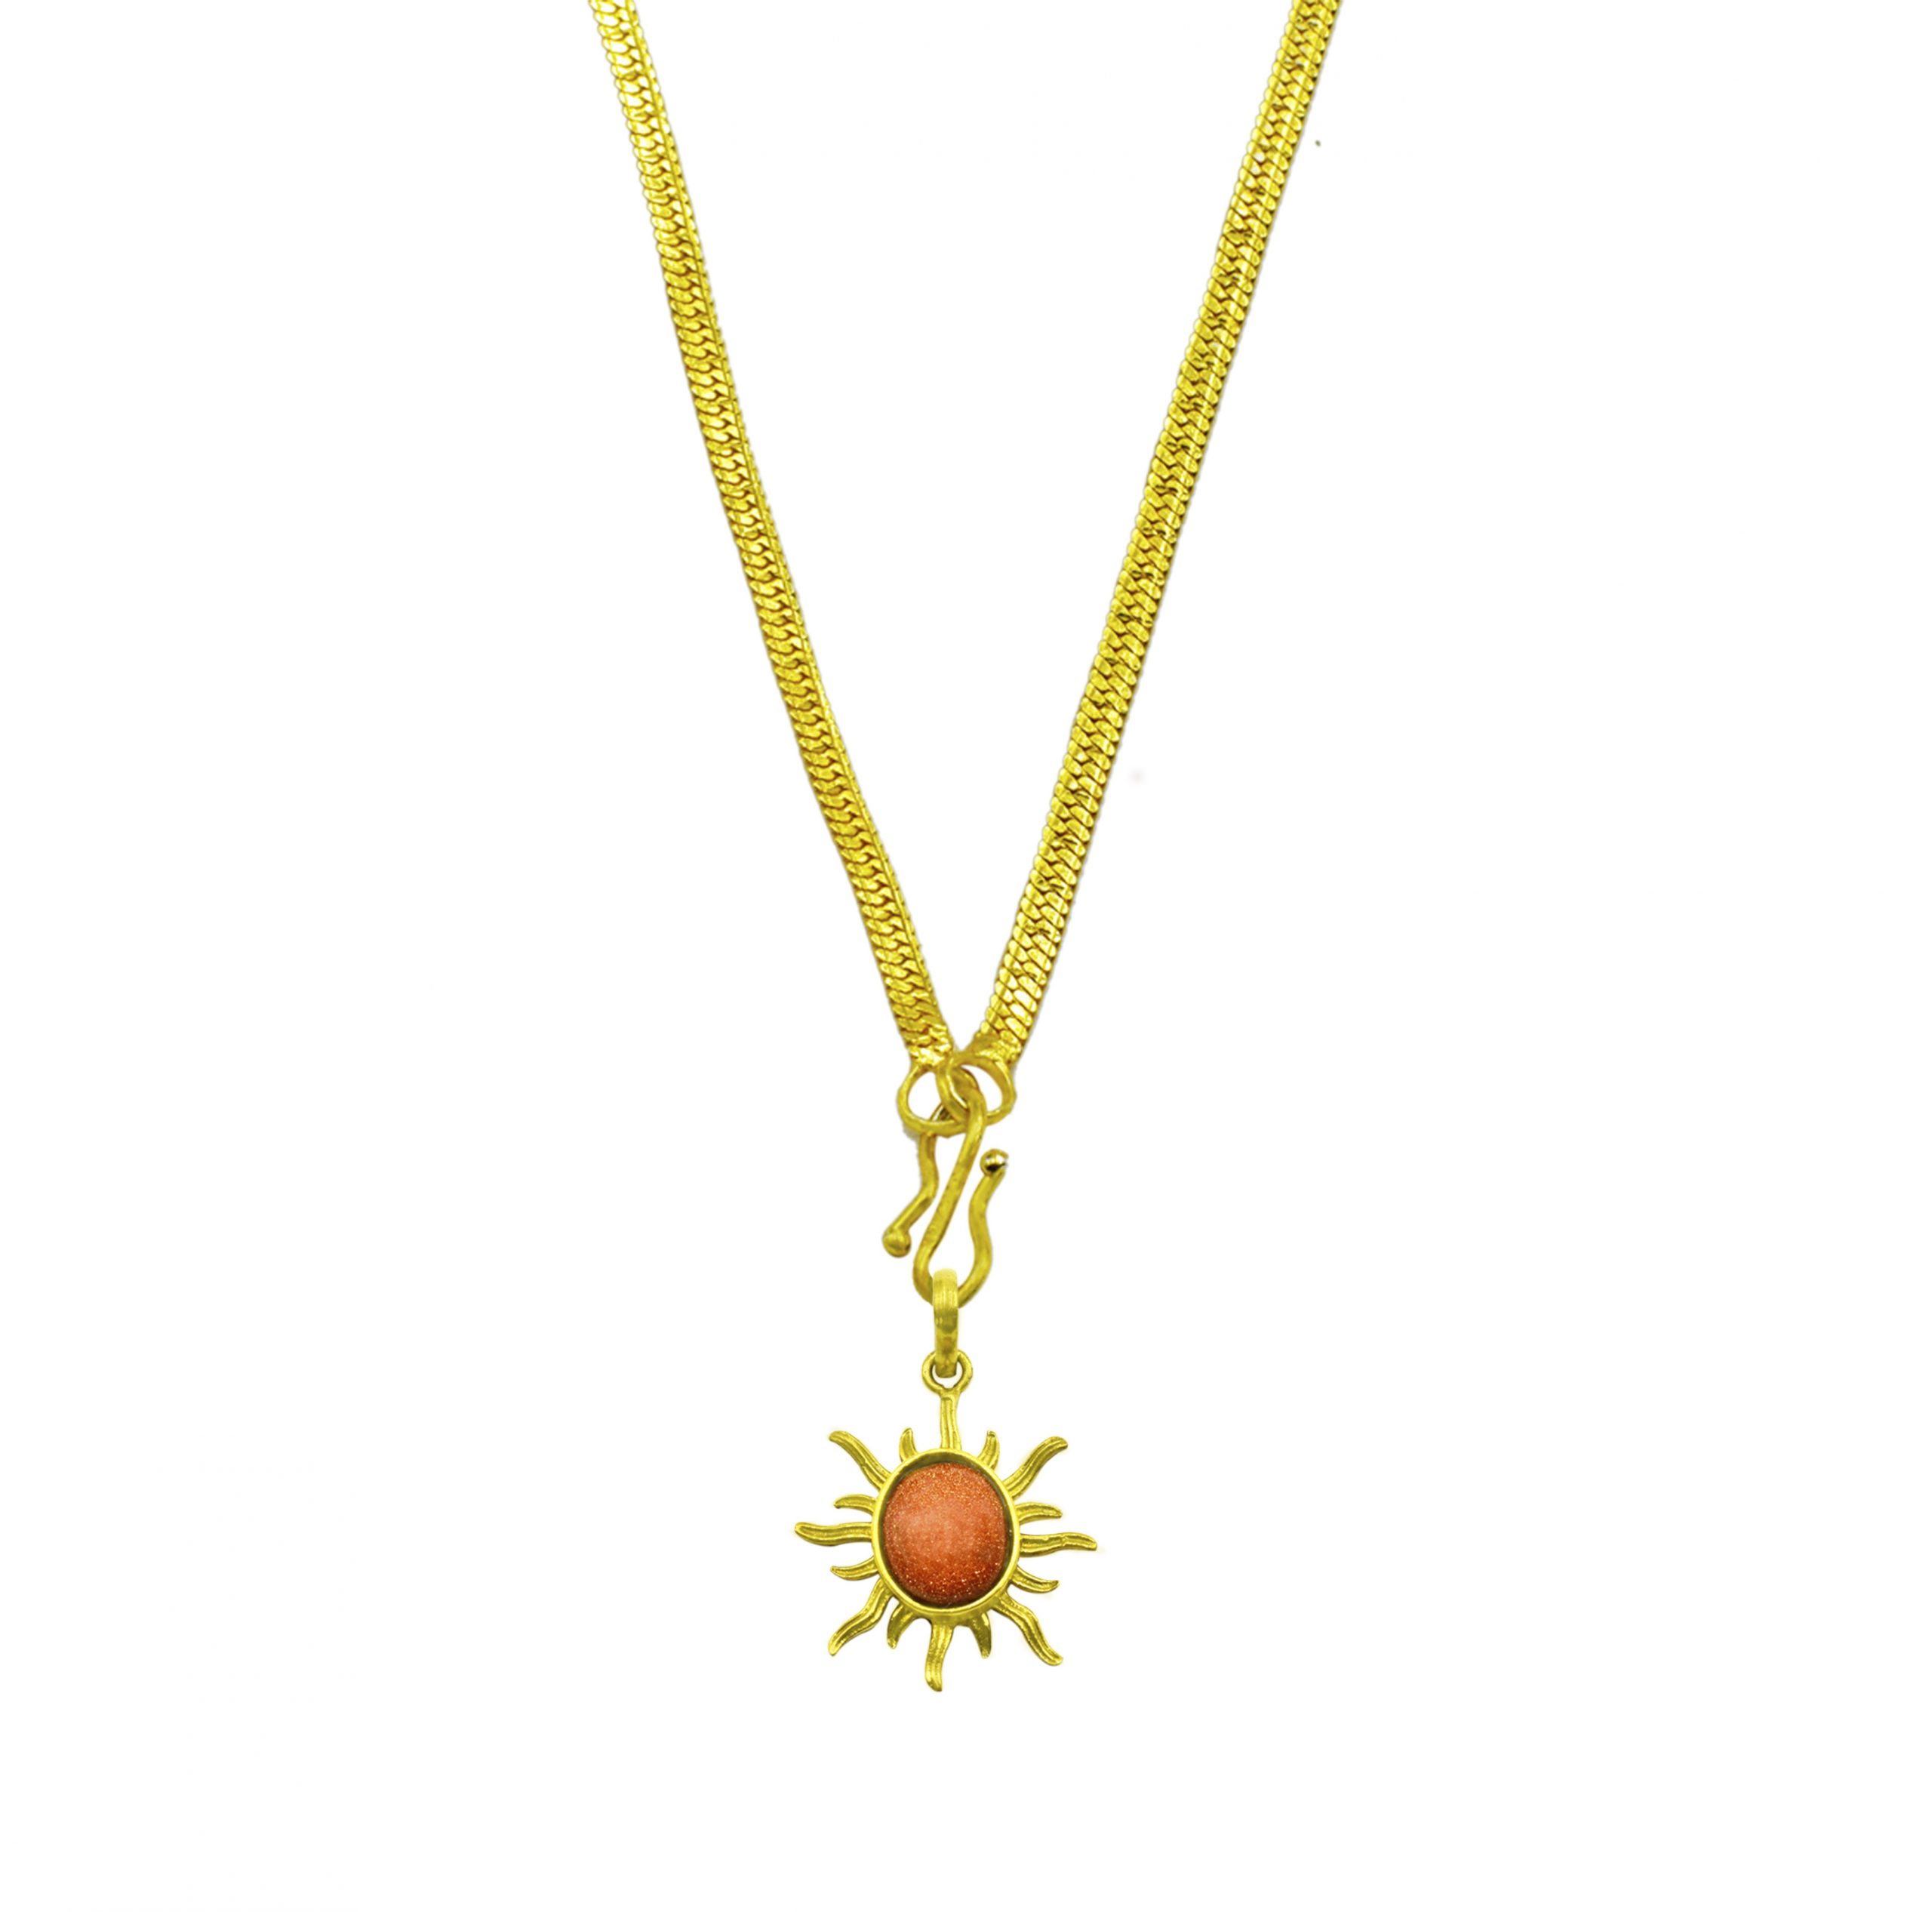 Surya Kavach Locket